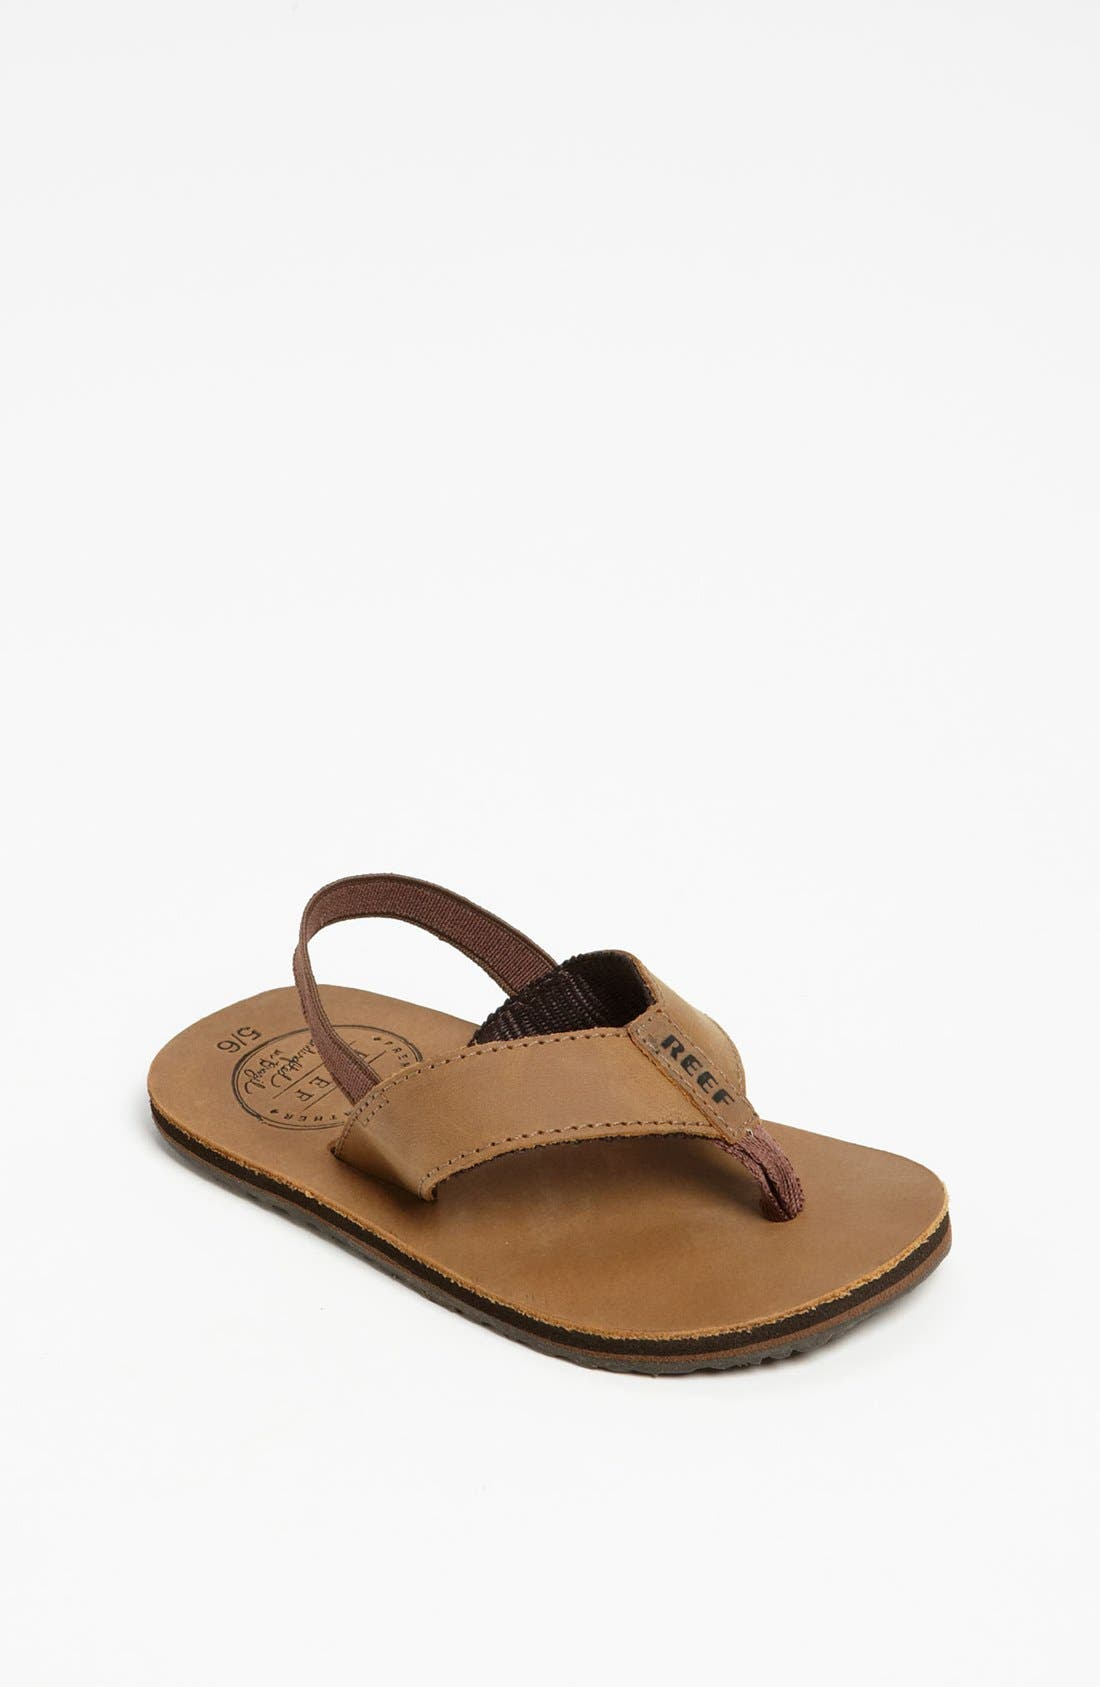 REEF, 'Grom' Leather Flip-Flop, Main thumbnail 1, color, BRONZE BROWN